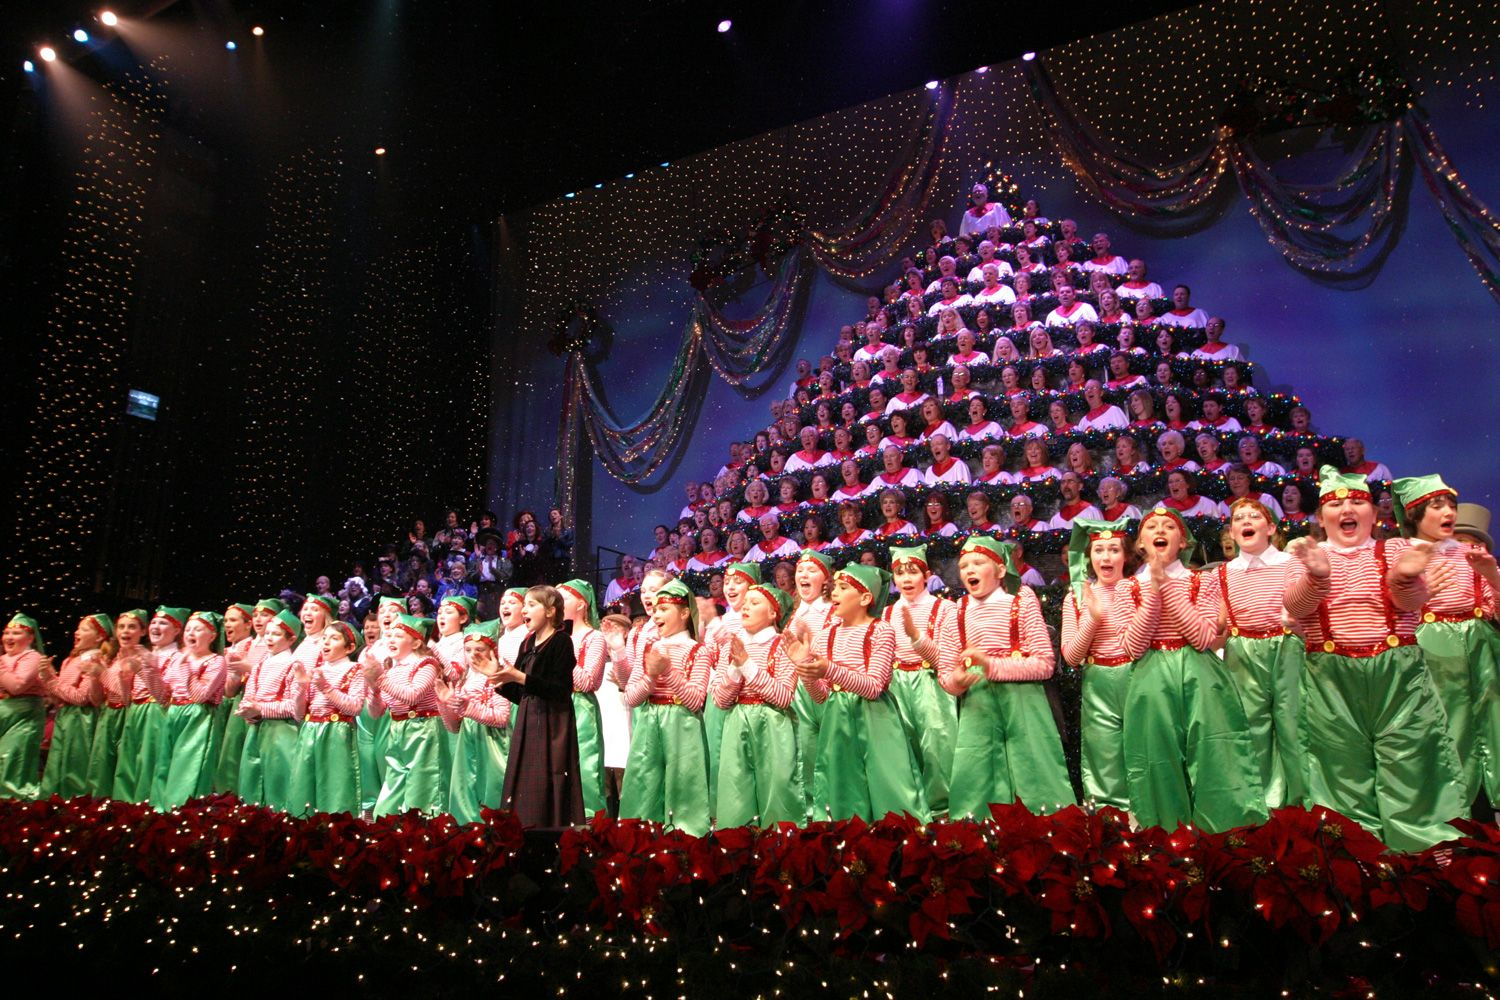 THE SINGING CHRISTMAS TREE: We've gone three years in a row, but not this year. Last year they had Micheal W. Smith and I don't know how they can top that. However, it's a beautiful Christmas show and a wonderful way to get in the Holiday spirit.  Singing Christmas Tree | Portland